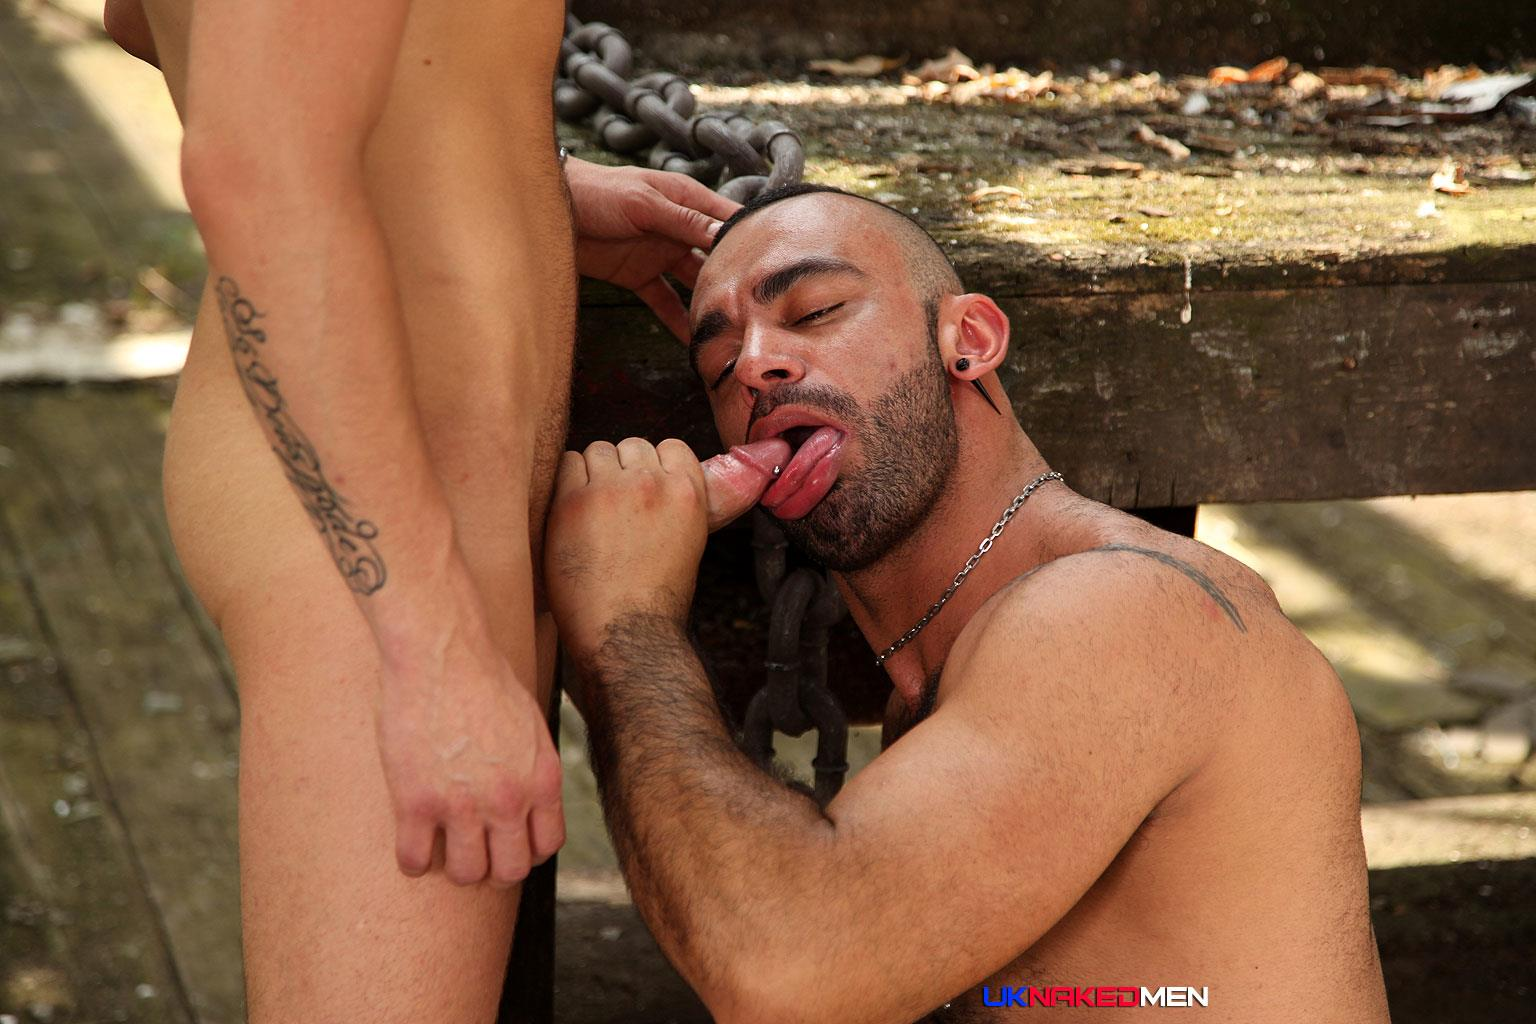 UK Naked Men Fuck Loving Criminals Episode 4 Tony Thorn and Fabio Lopez Hairy Arab Fucking A Smooth Guy Amateur Gay Porn 15 Hairy Muscle Stud Tony Thorn Fucking Smooth Muscle Hunk Fabio Lopez